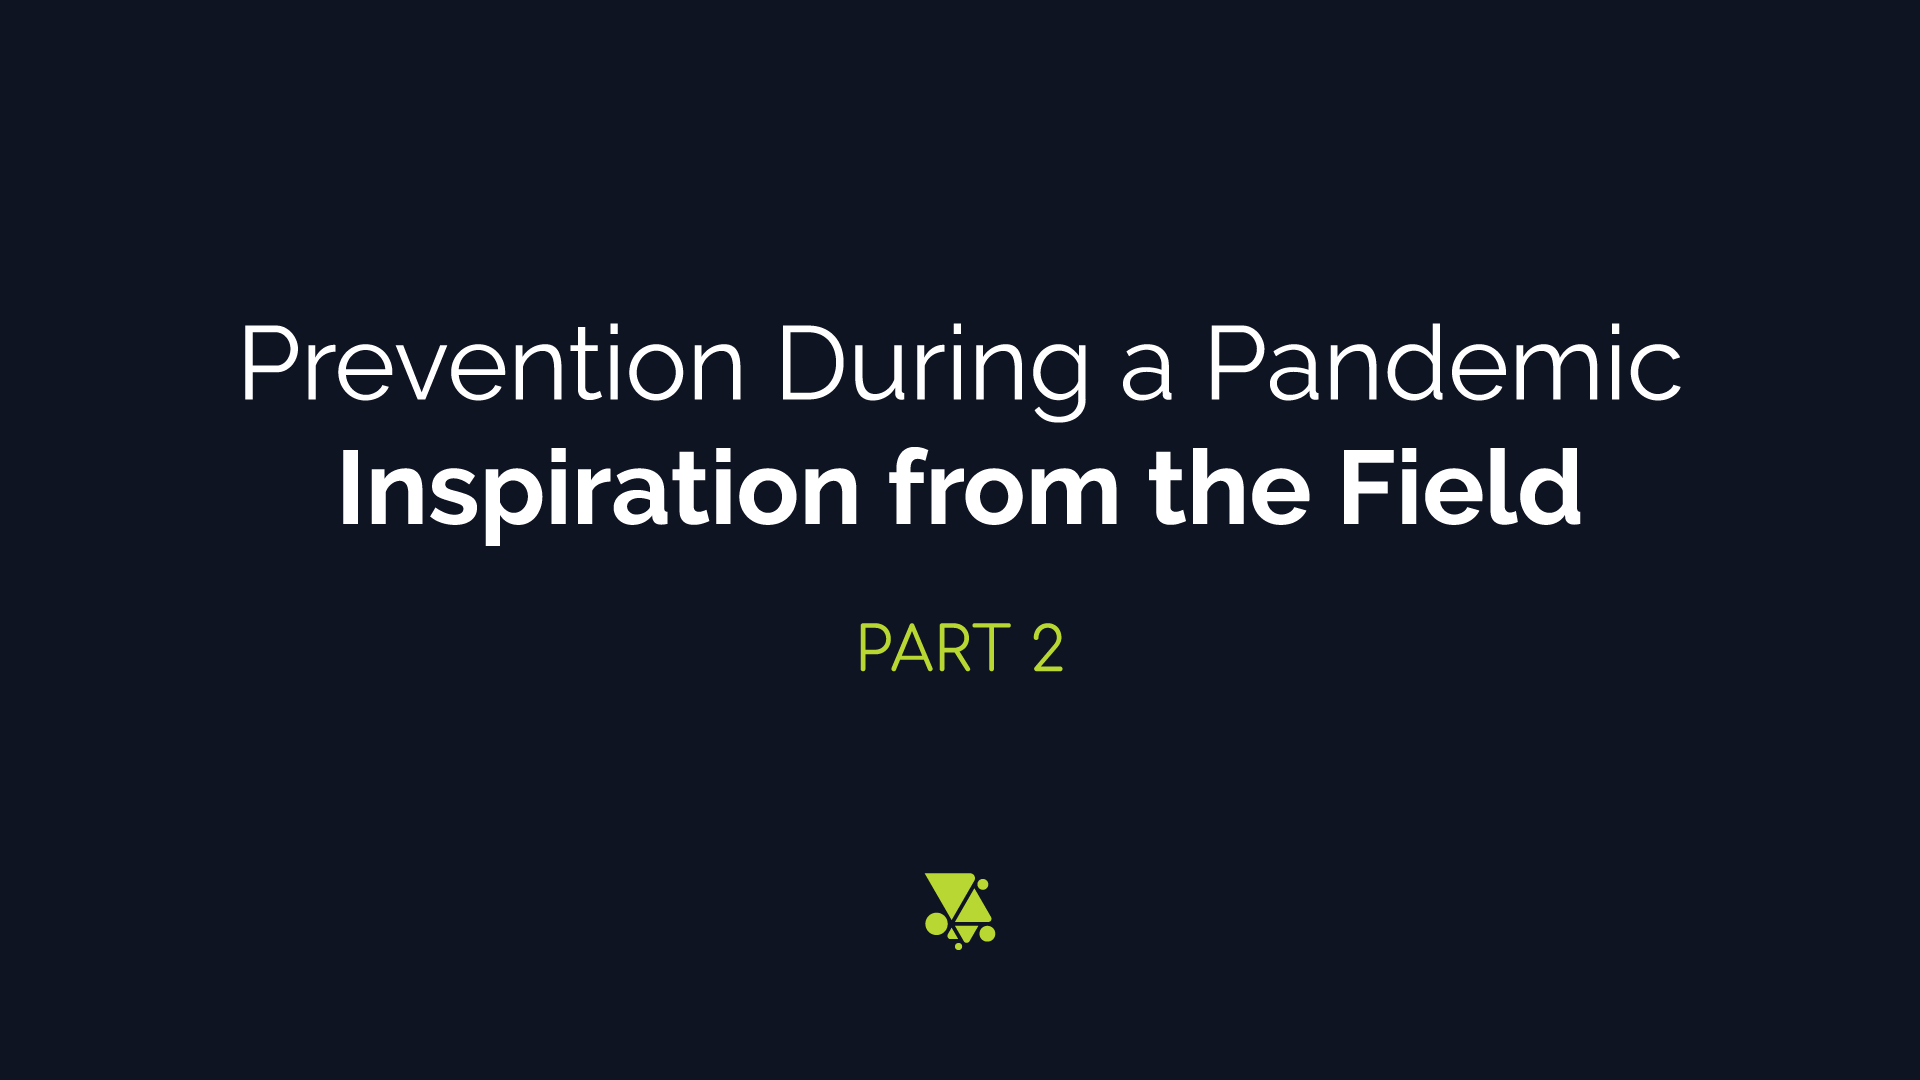 Prevention During a Pandemic: Inspiration from the Field Part 2